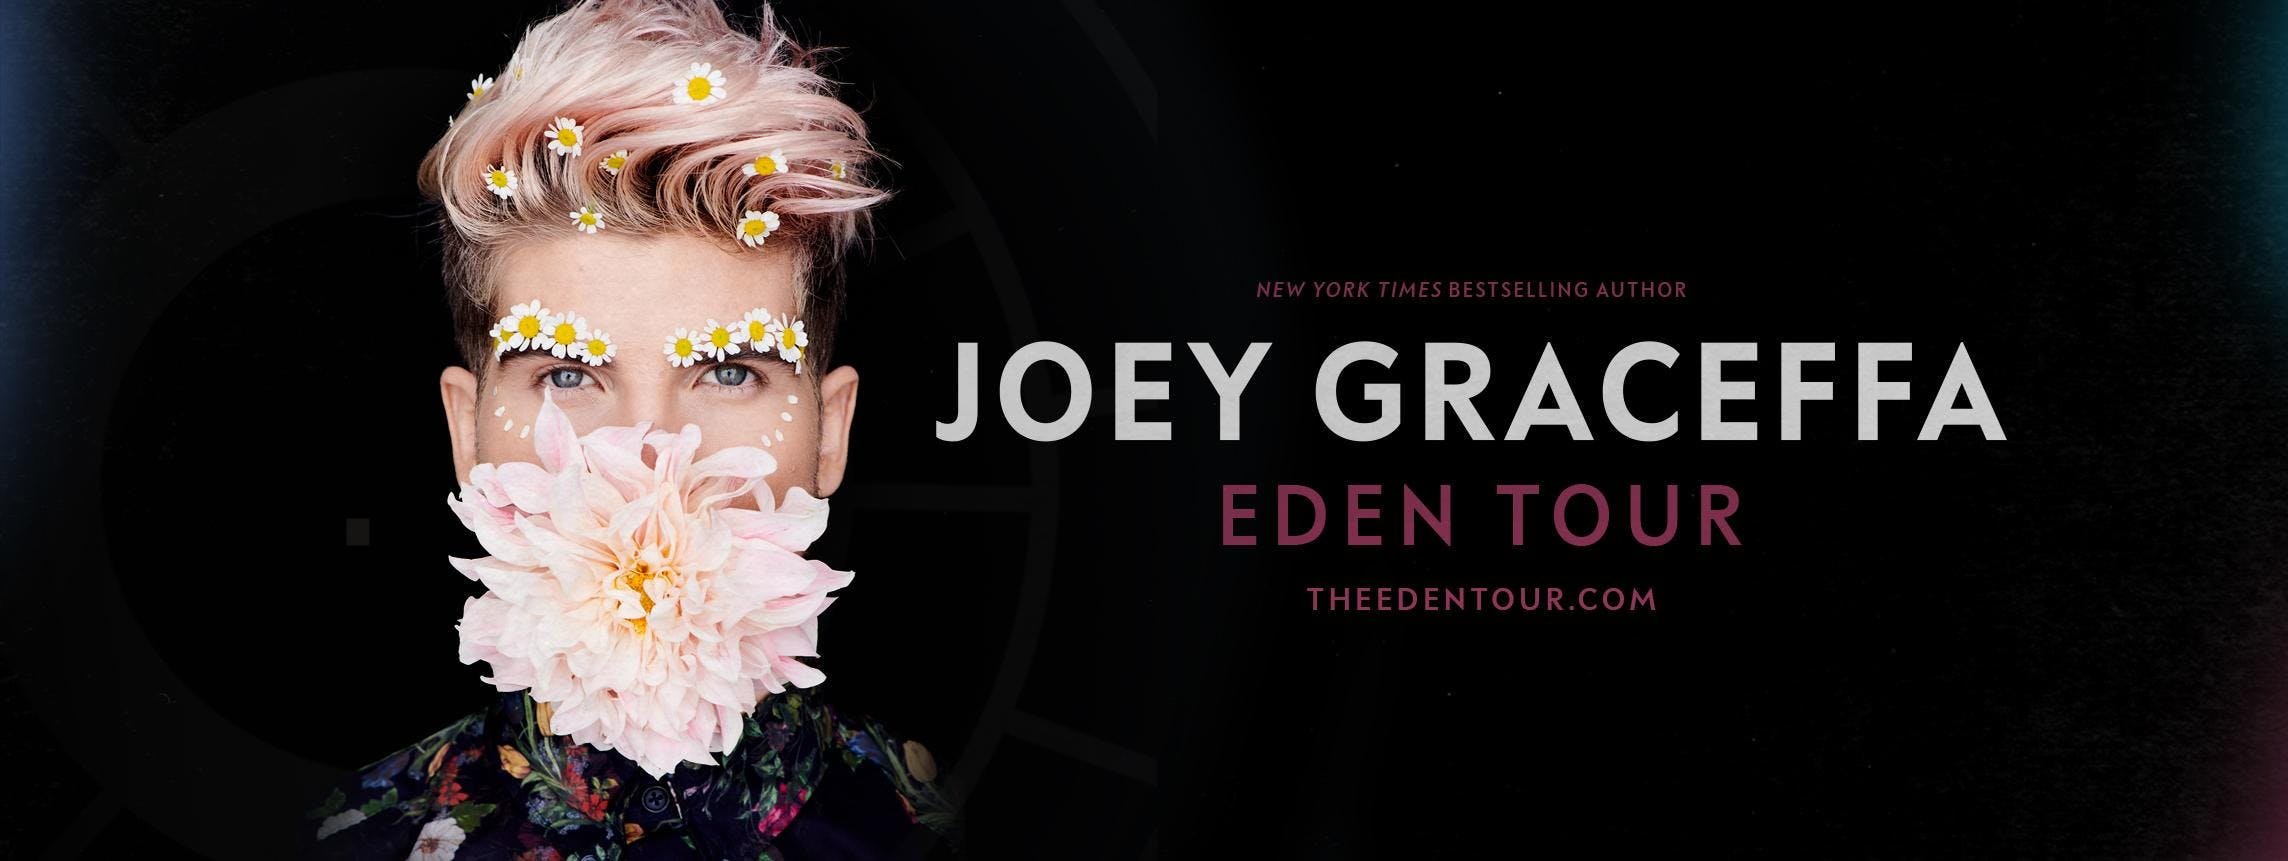 Joey graceffa eden tour swedish american hall tickets mon oct about this event m4hsunfo